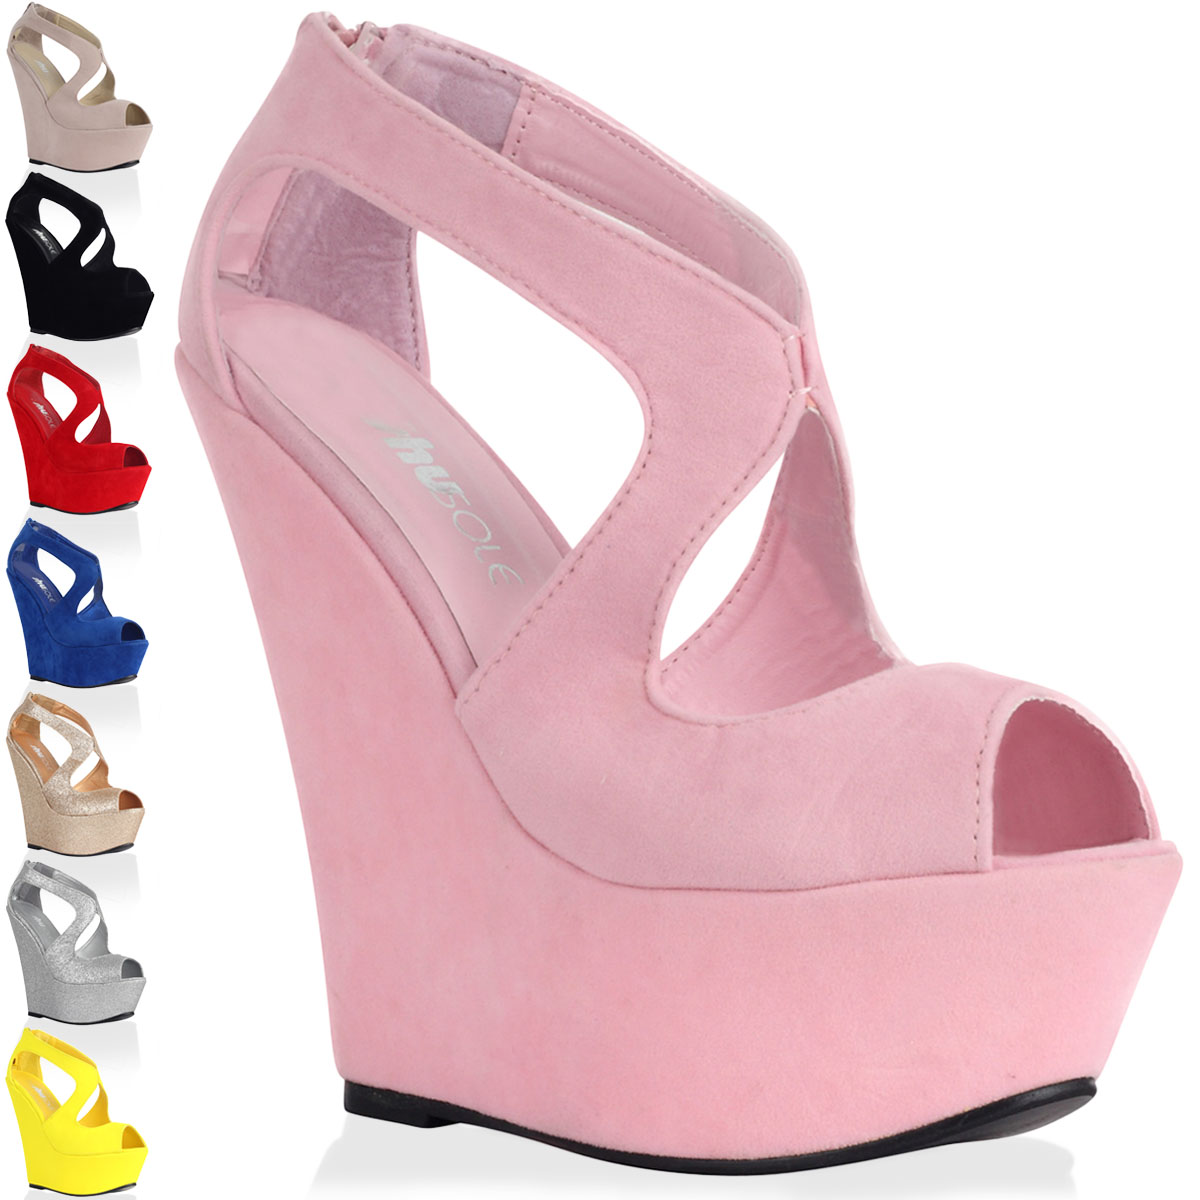 Ladies Cut Out Womens Platform Peep Toe Strappy High Wedge Heel ...